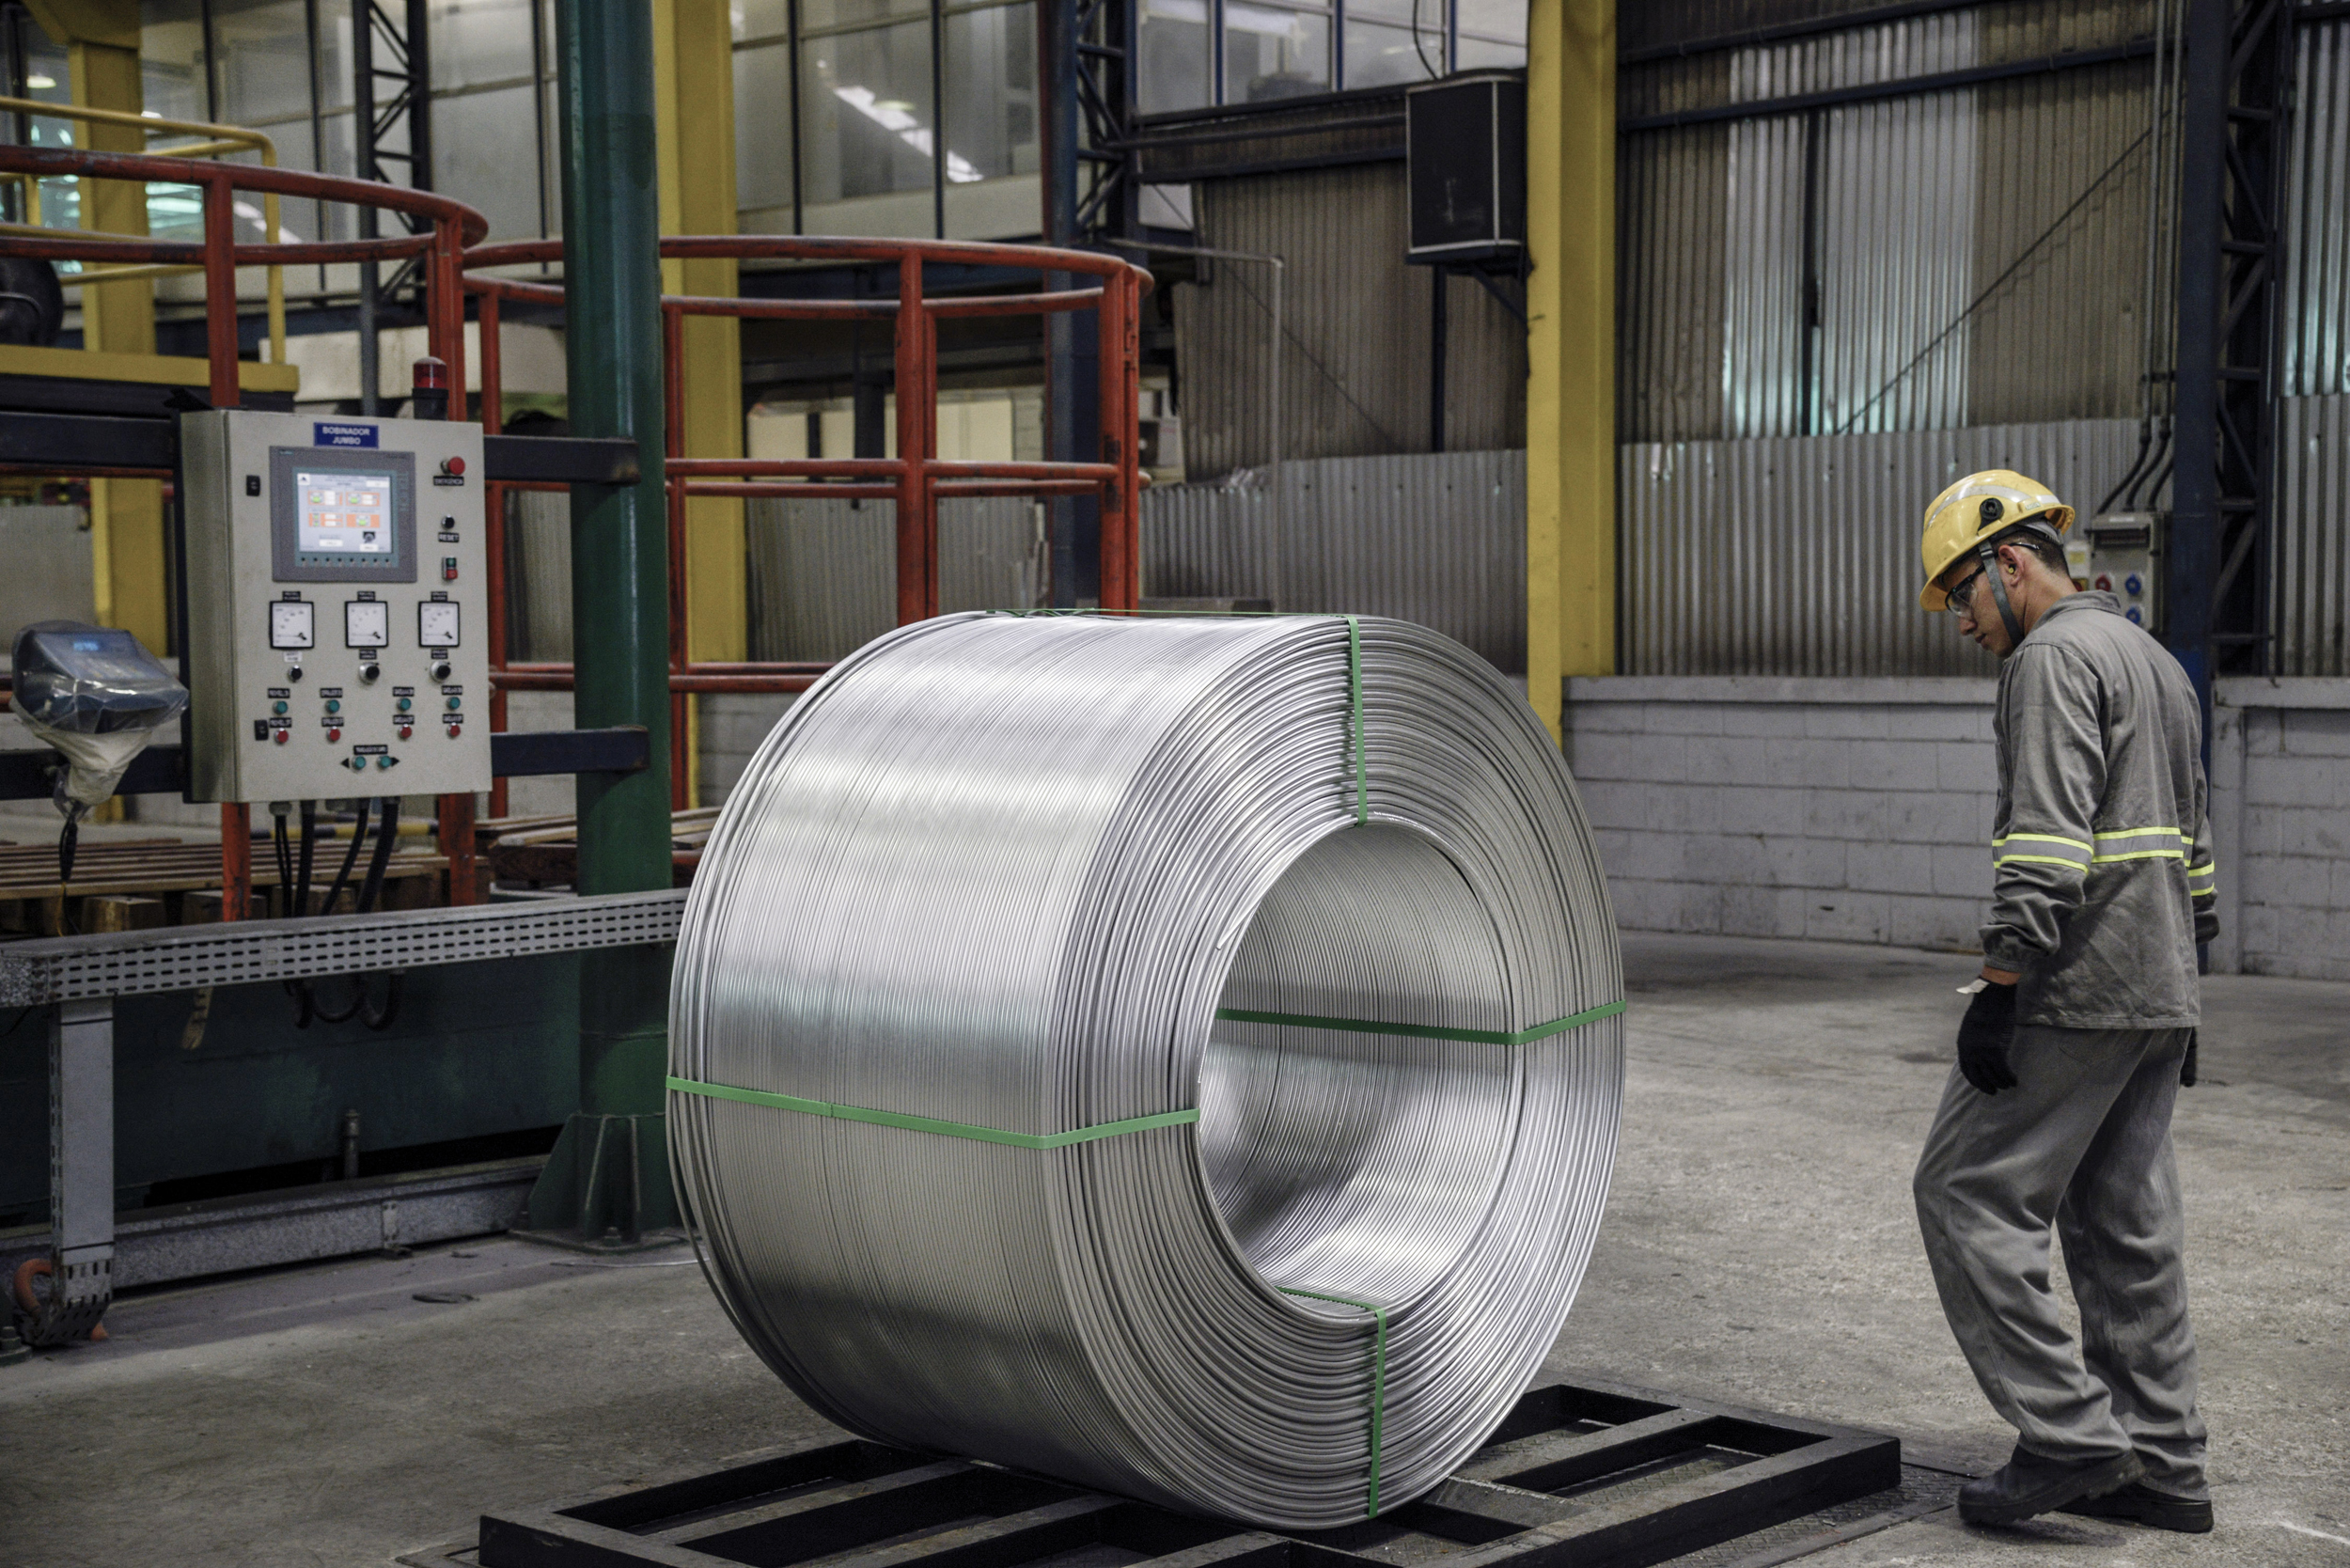 Impact Of Covid 19 On Steel and Aluminium Industry 2020 Market Challenges, Business Overview And Forecast Research Study 2026